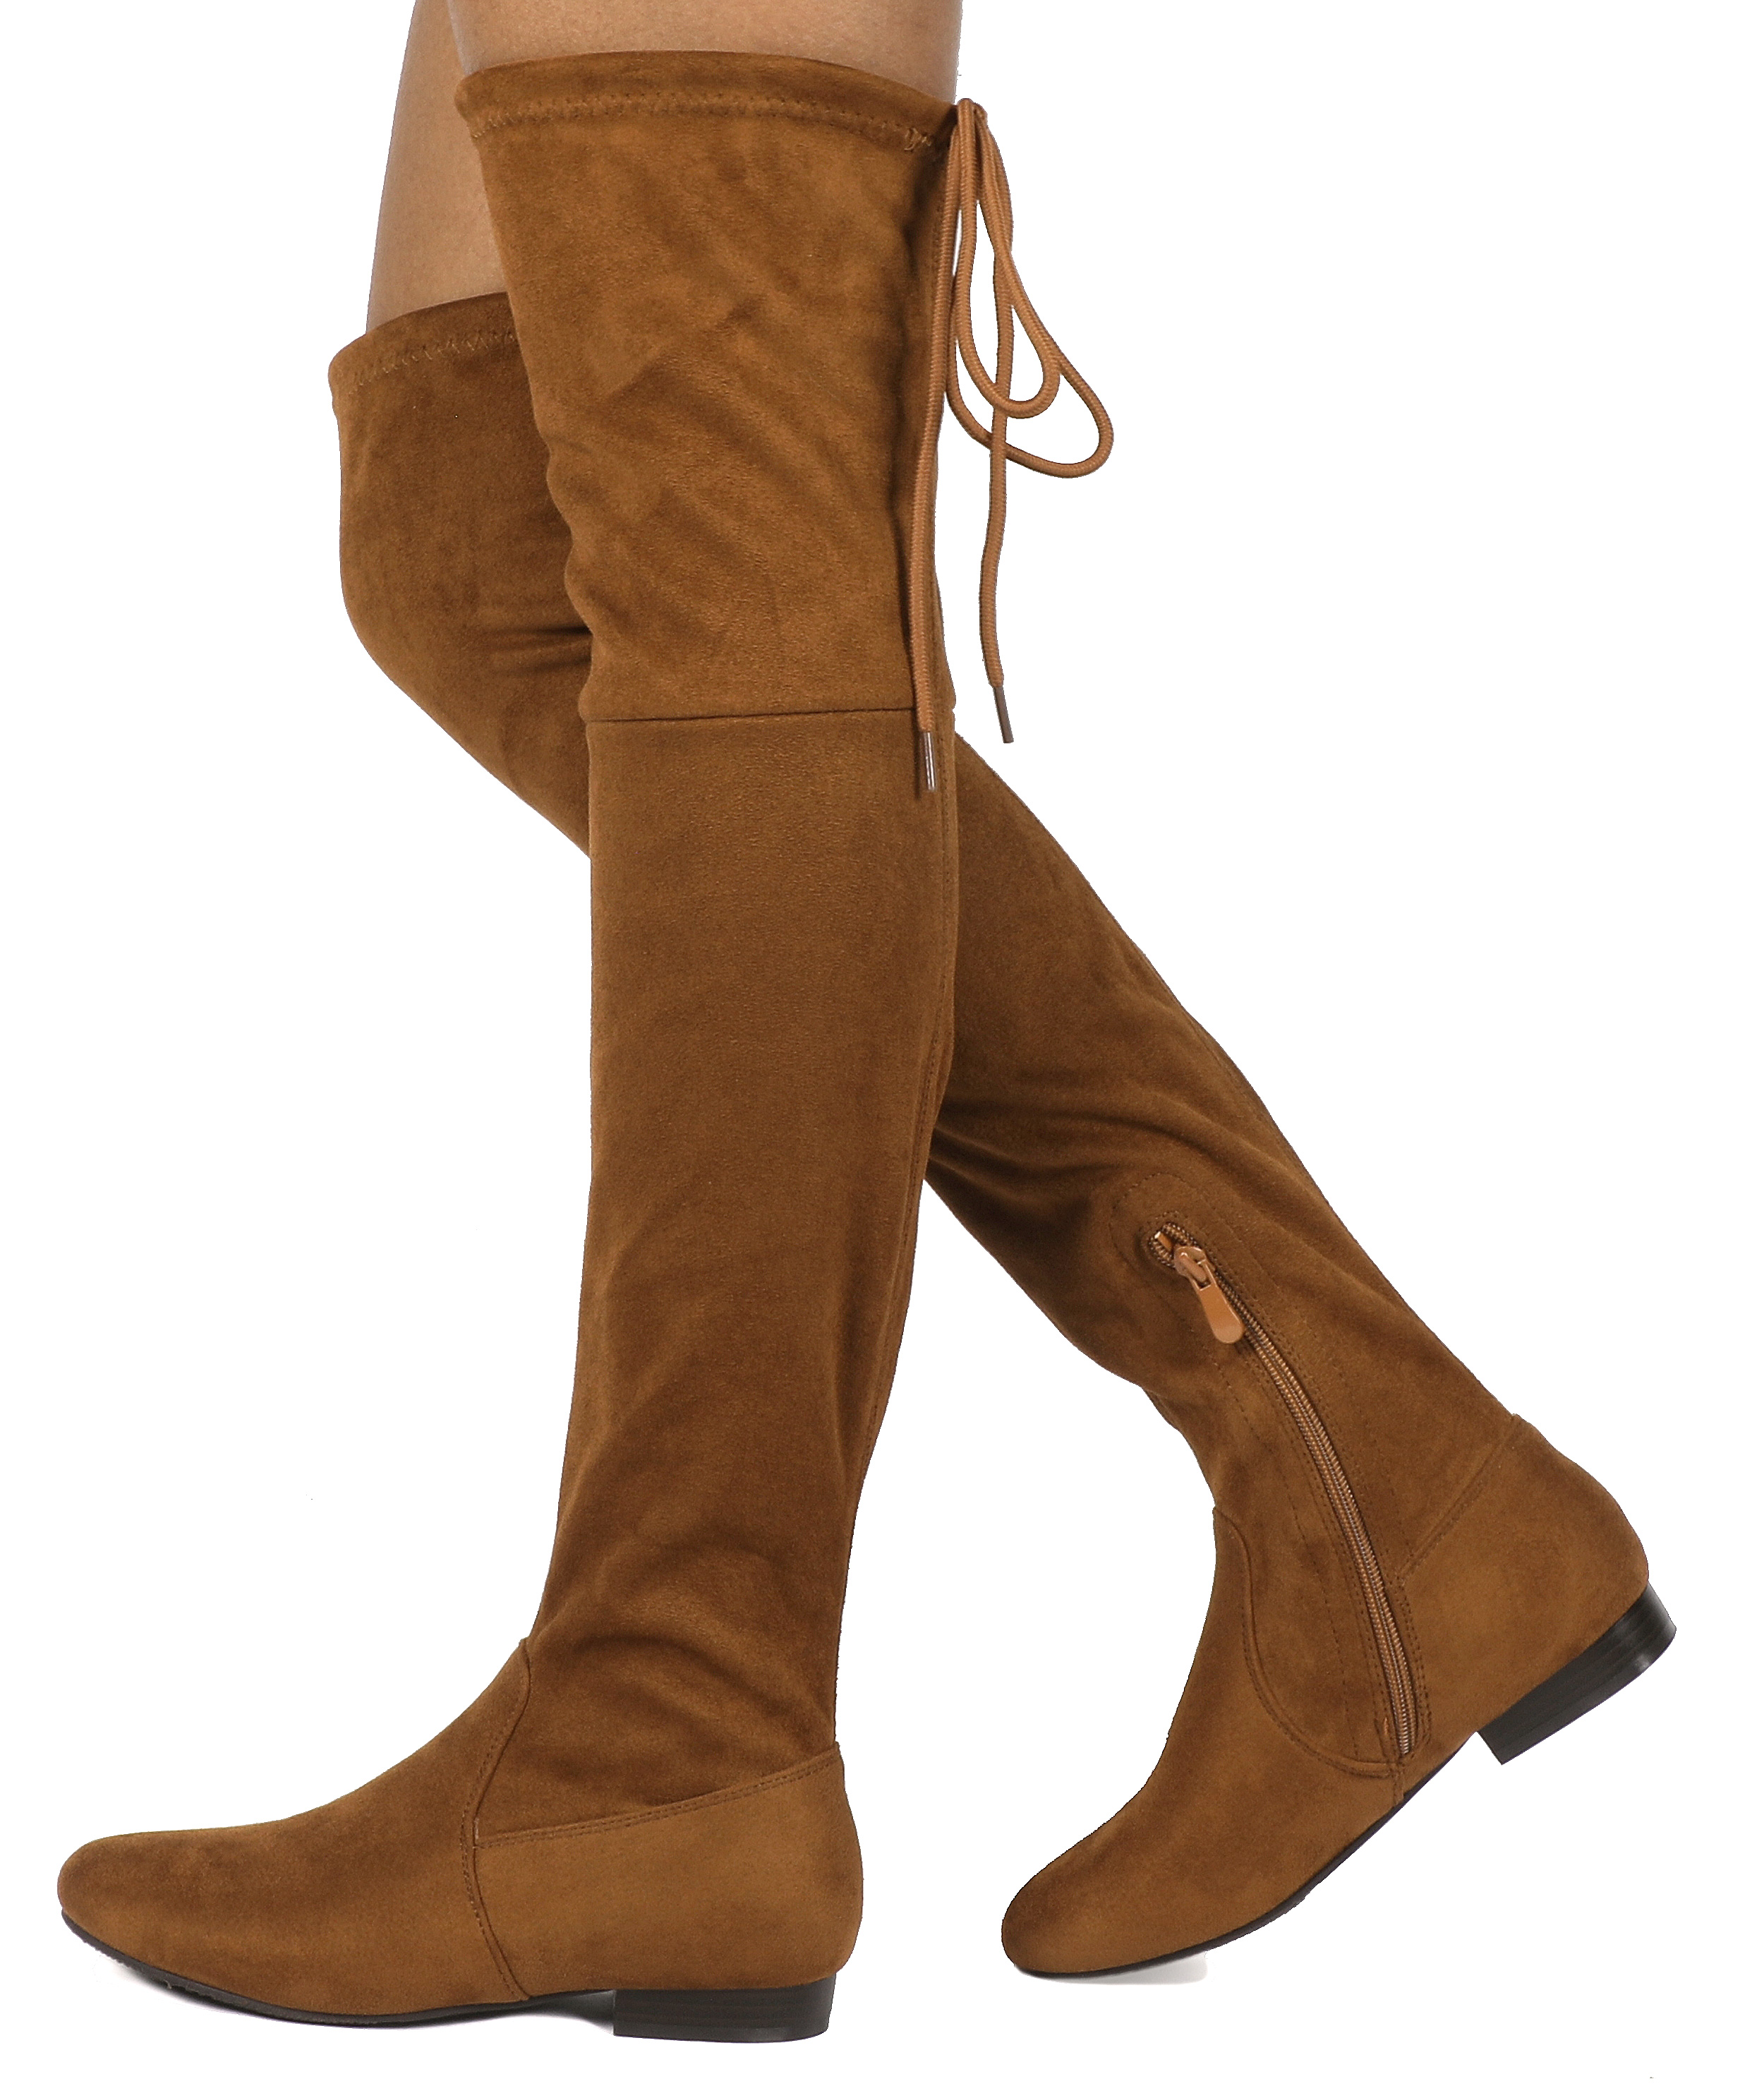 Women-Thigh-High-Flat-Boots-Stretchy-Drawstring-Tie-Fashion-Over-The-Knee-Boots miniatuur 15